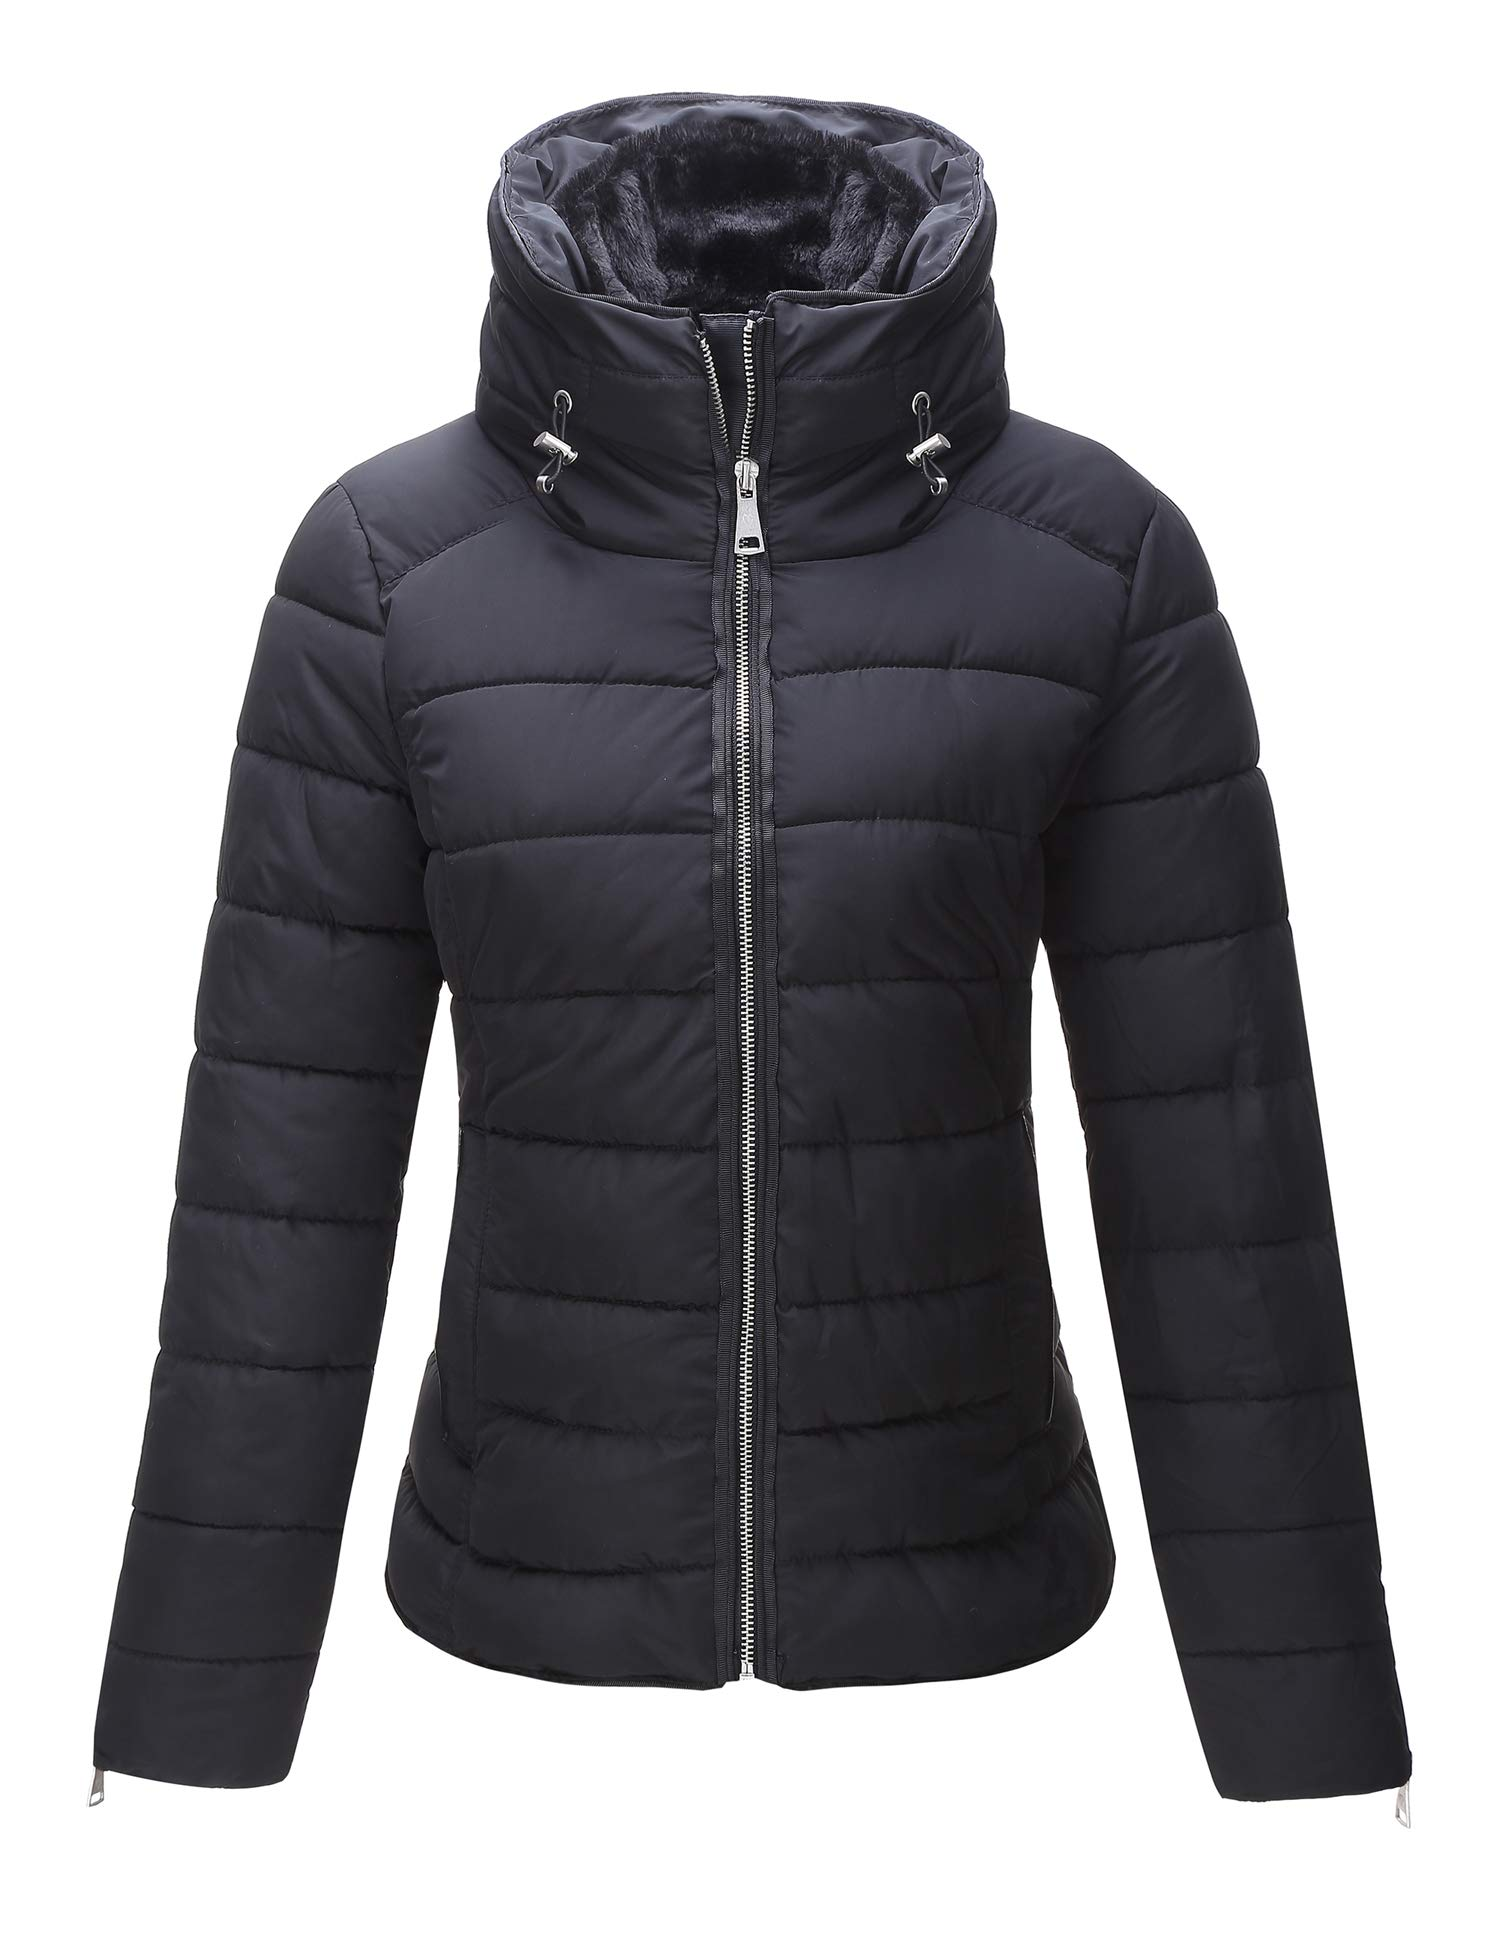 Bellivera Women's Quilted Lightweight Padding Jacket, Puffer Coat Cotton Filling Water Resistant by Bellivera